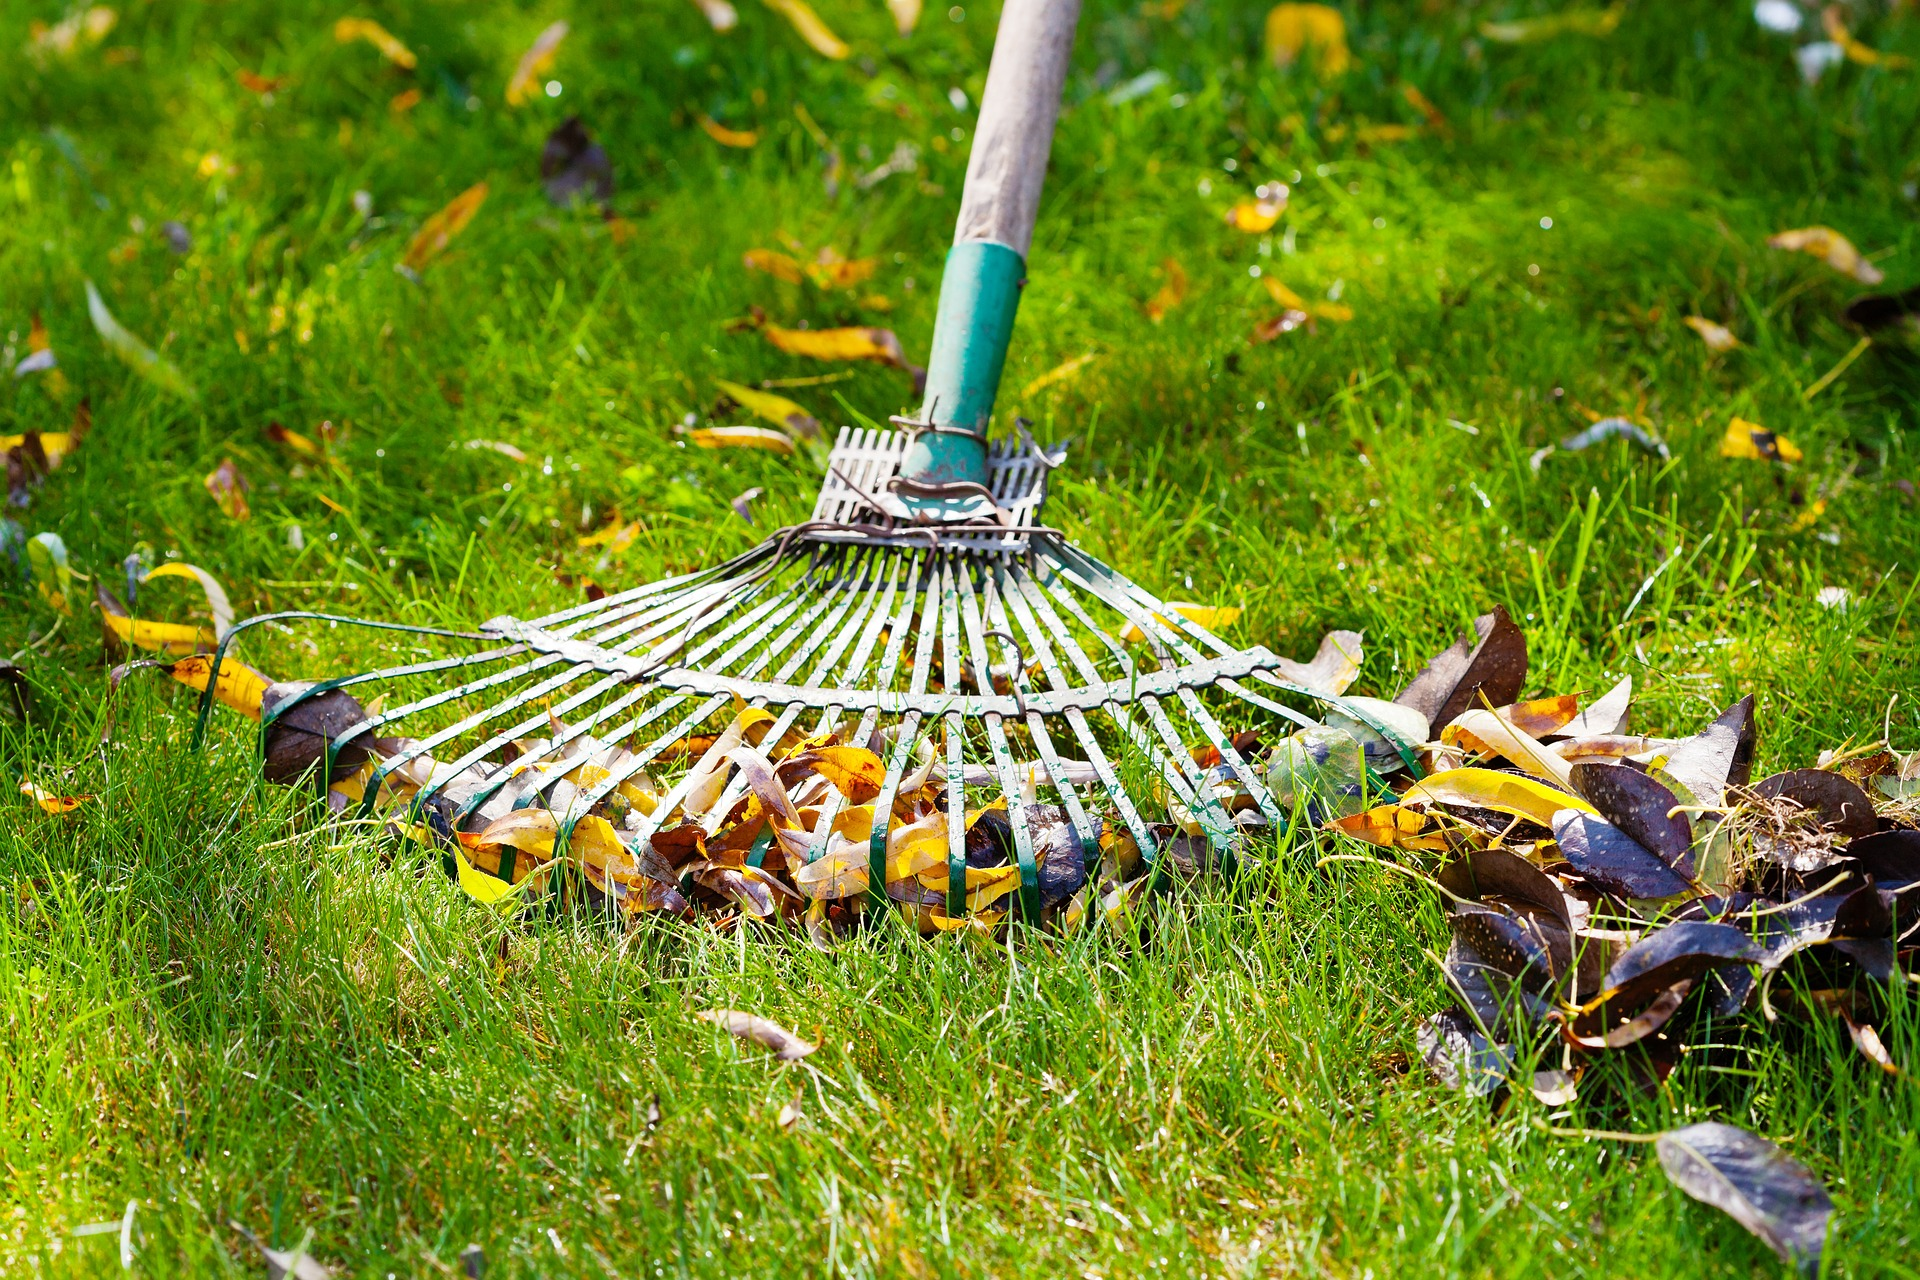 spring lawn care guide.jpg